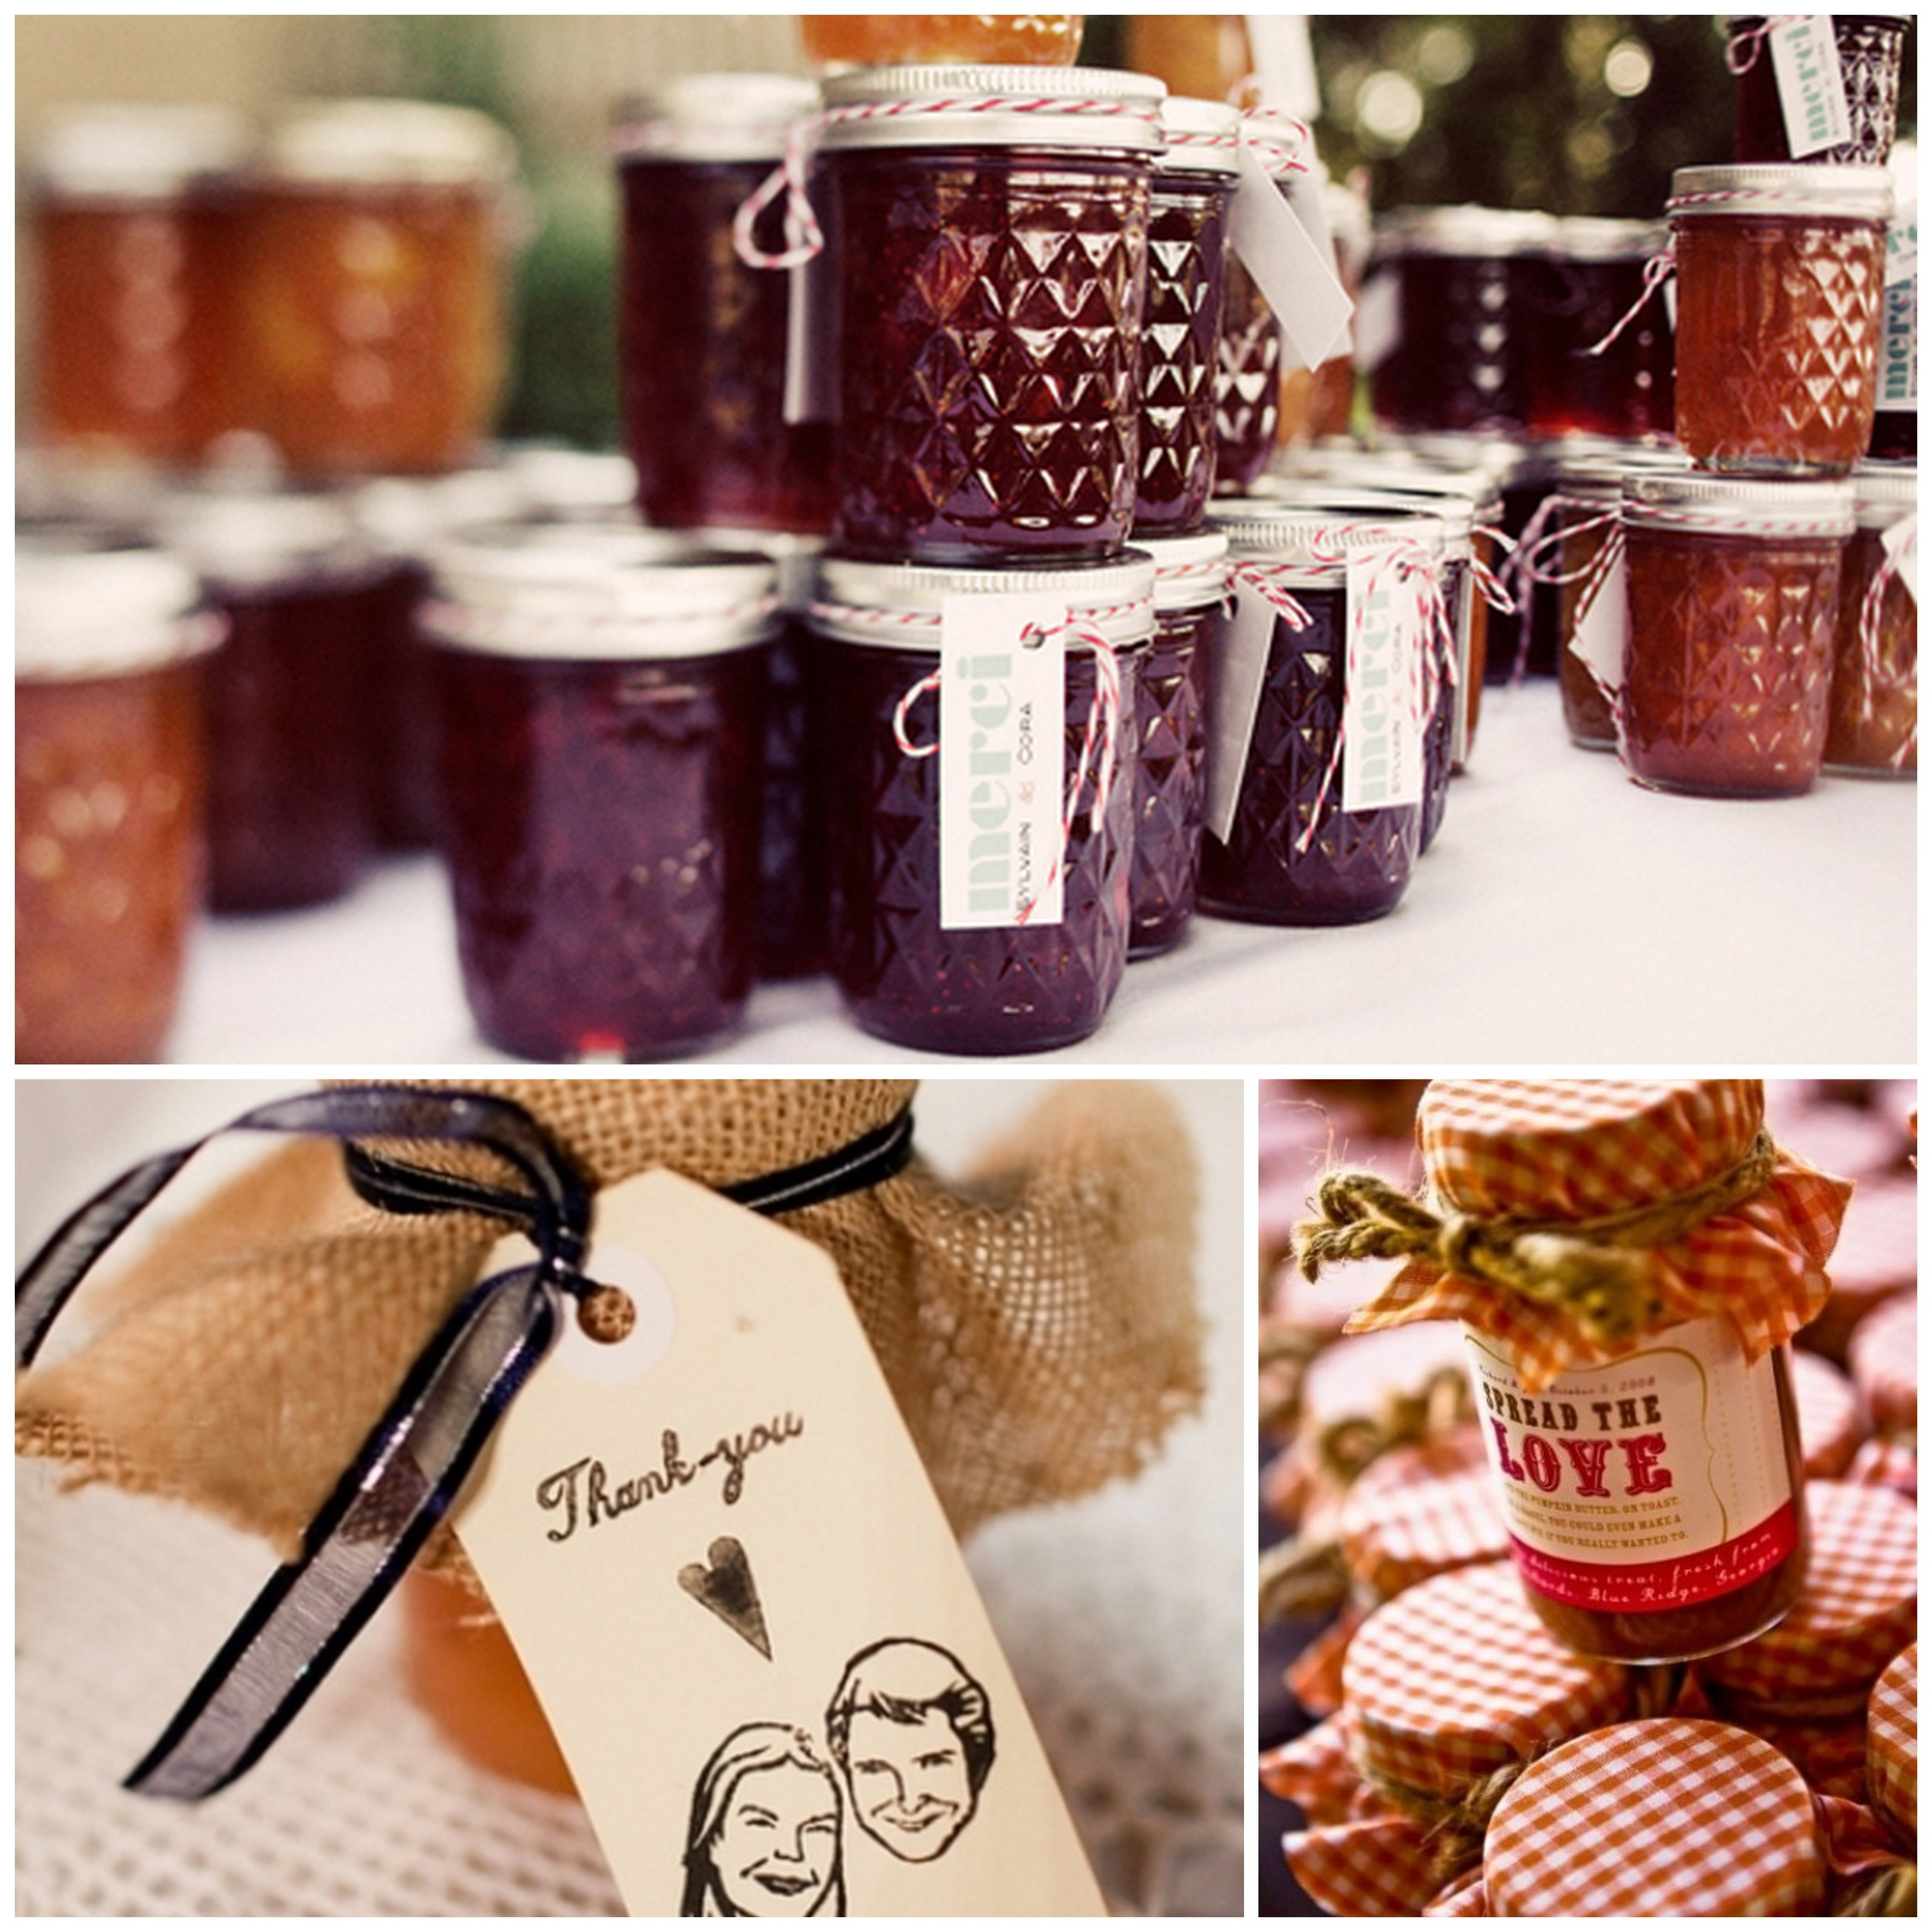 Peanut Butter Jelly Time - {Favors} | Engaged & Inspired Wedding ...